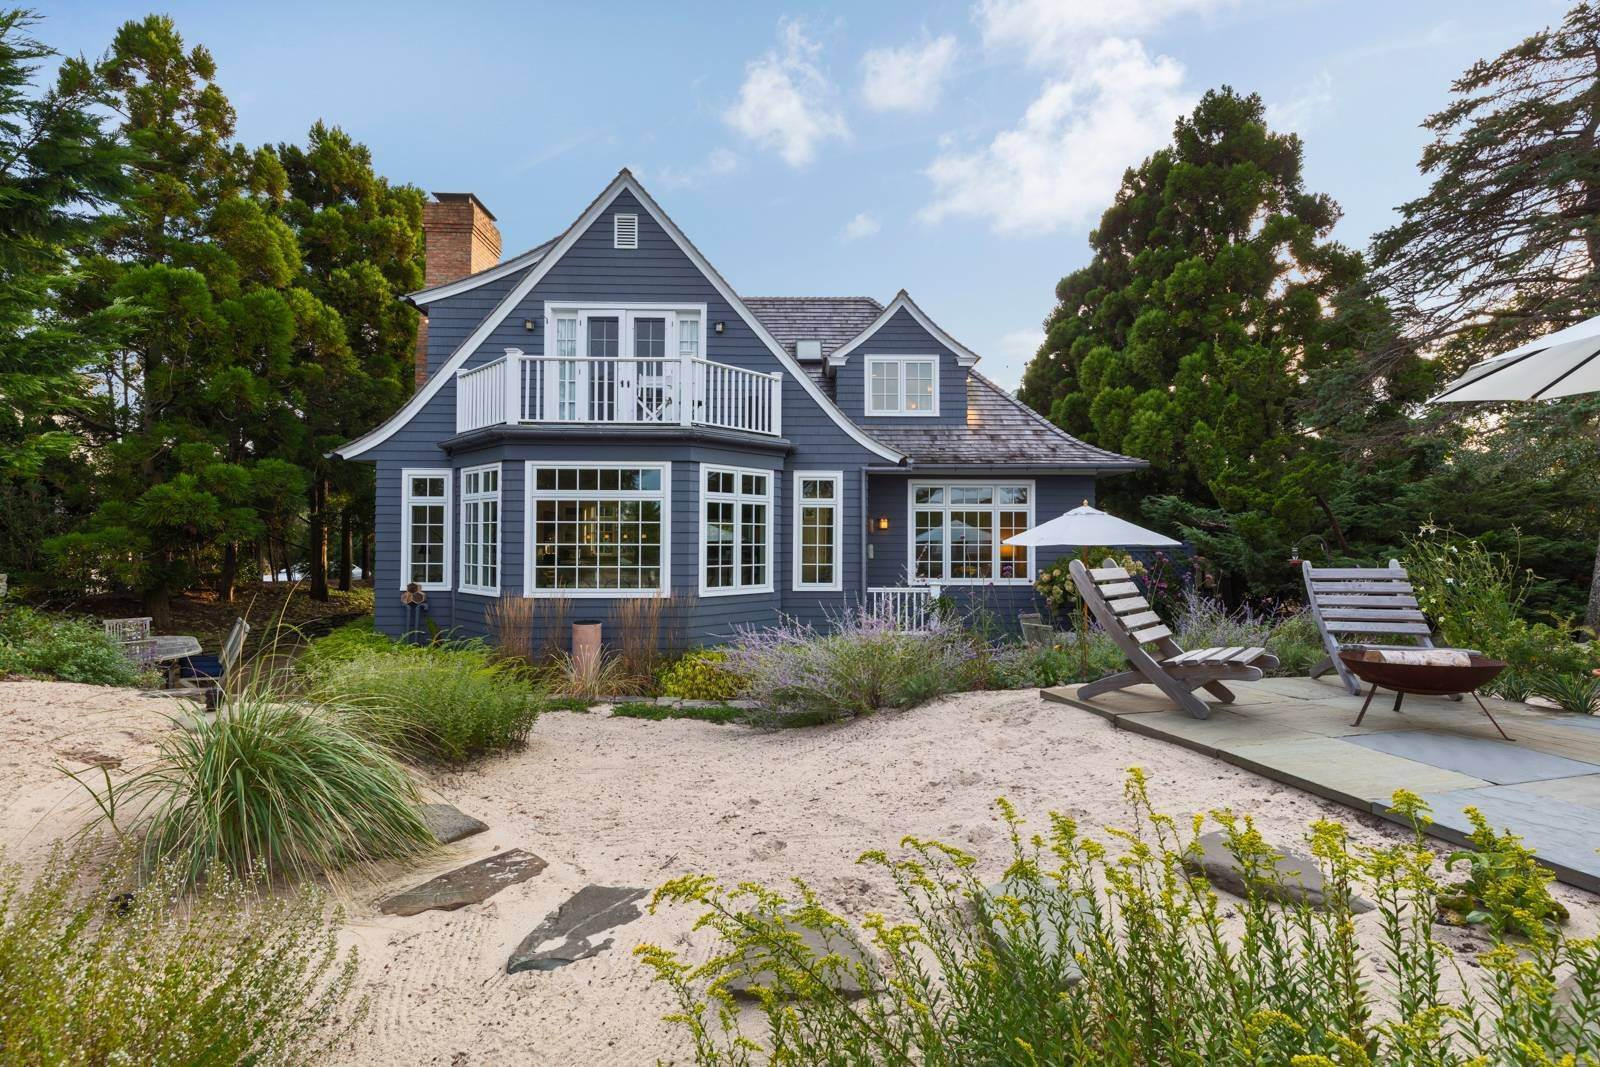 Single Family Home at Pristine Beach House Moments To The Ocean Amagansett, NY 11930